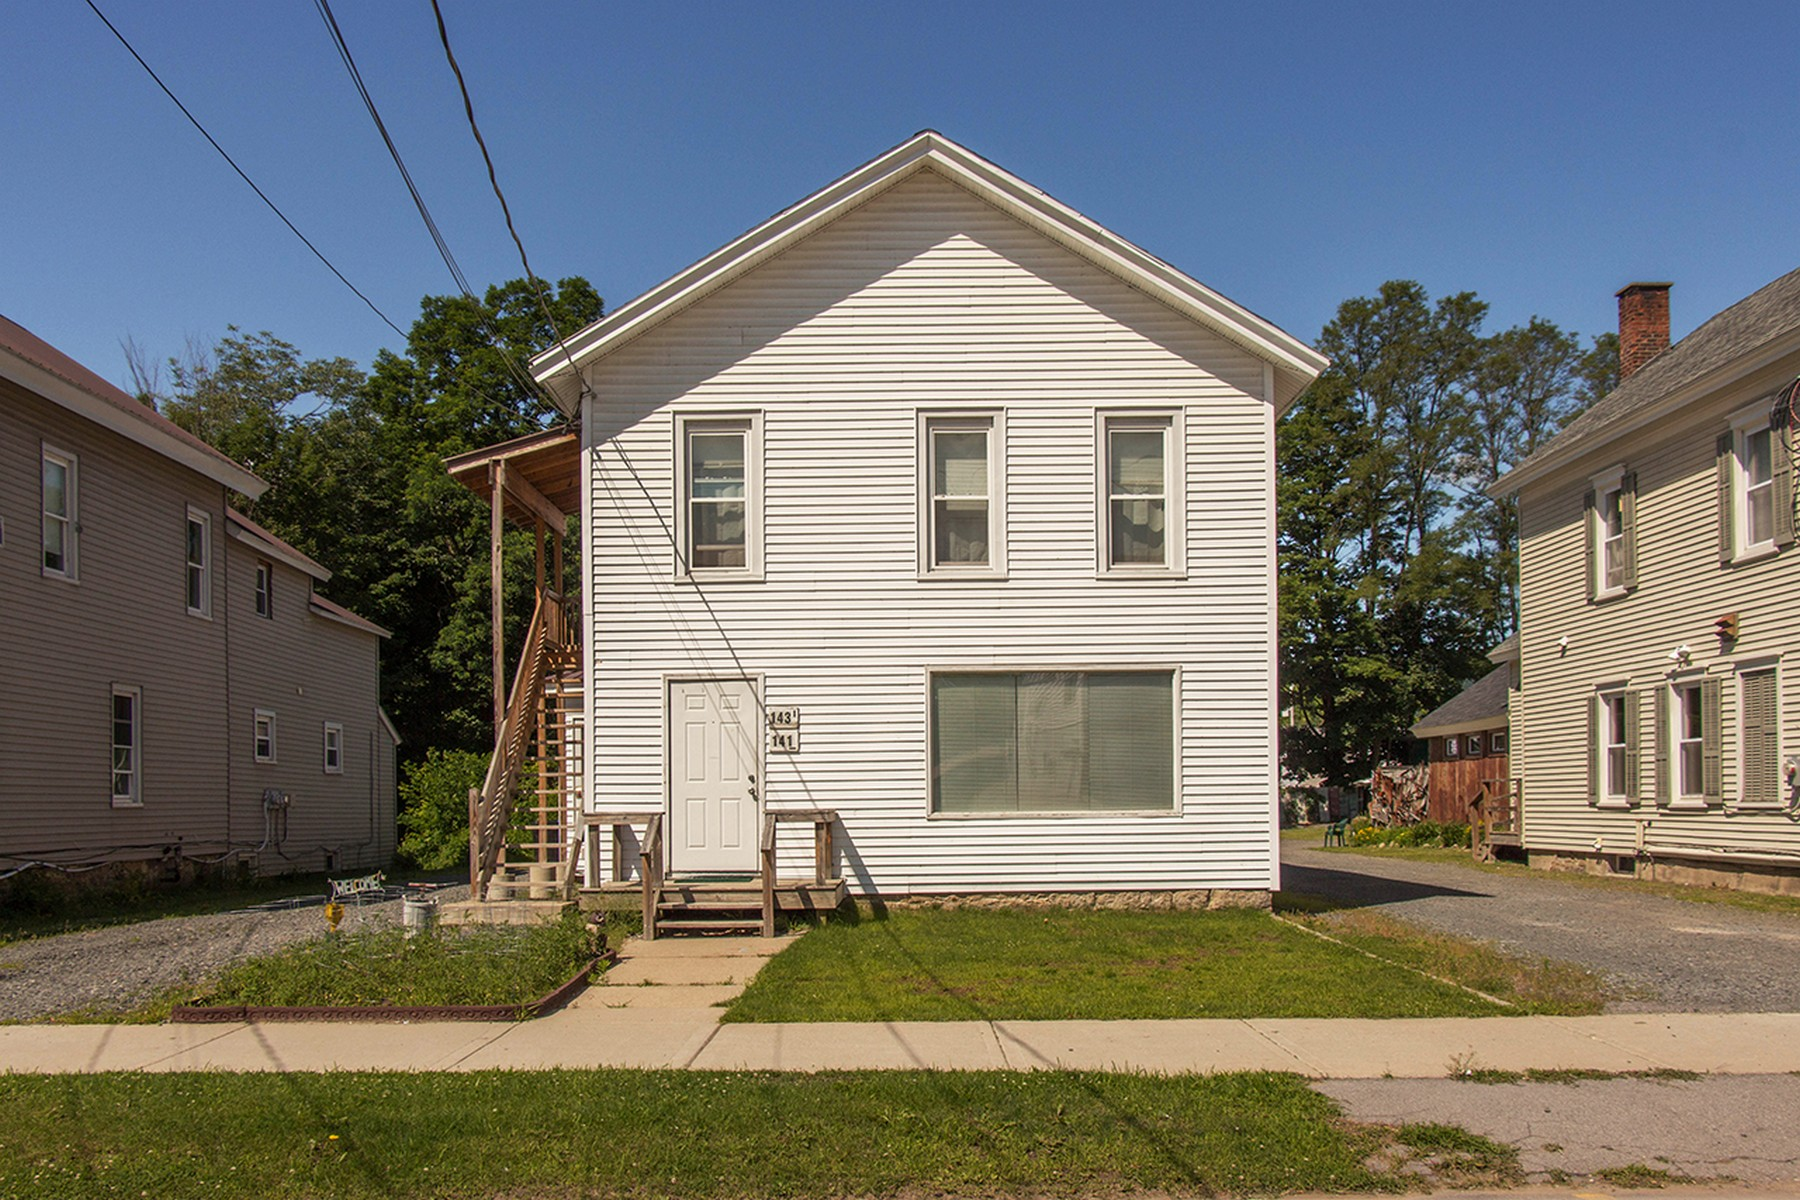 for Sale at Live & Work in Great Sacandaga Community 141-143 Main Street S Northville, New York 12134 United States